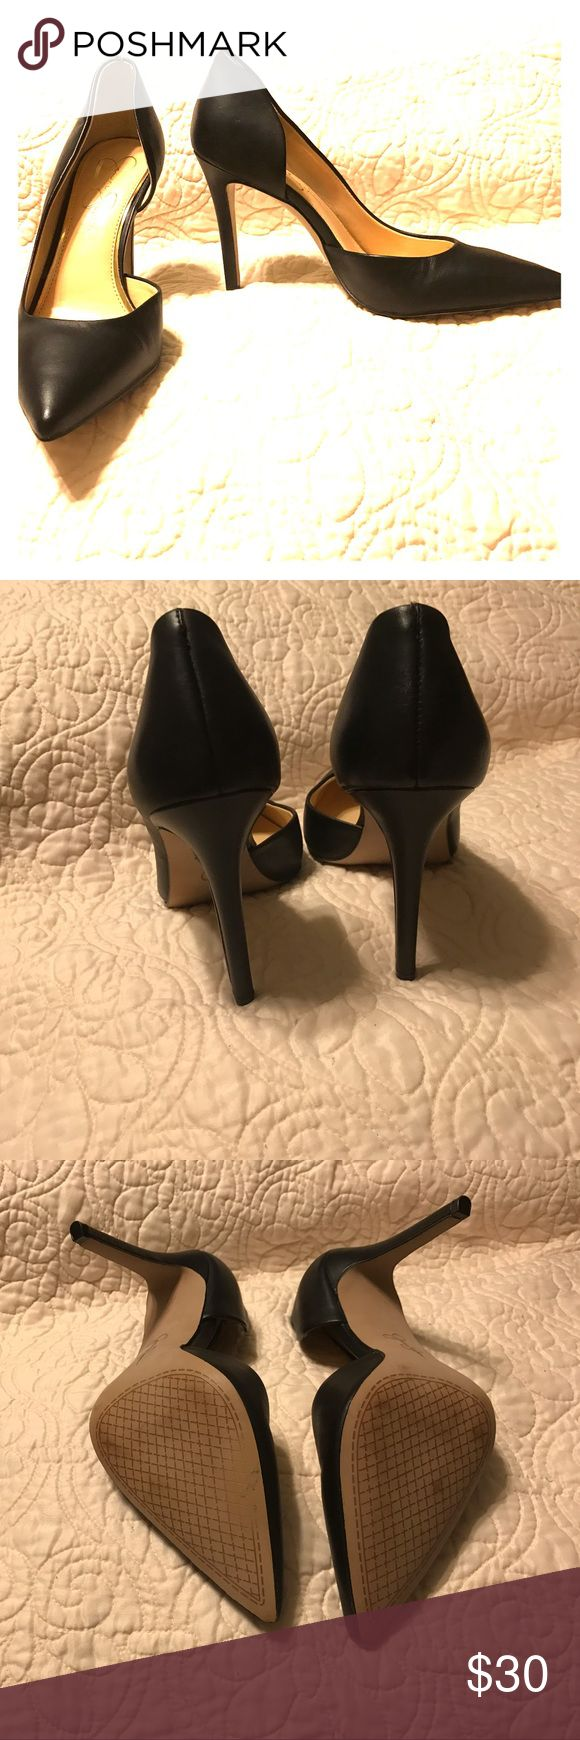 """Jessica Simpson Black Pointed Heel (Claudette) Jessica Simpson Claudette Black Pointed Heels. Size 8. Heel Height: 4"""". d'Orsay Silhouette. Faux Leather. Worn once. No damage, except for minimal wear to the soles (see pictures). Jessica Simpson Shoes Heels"""